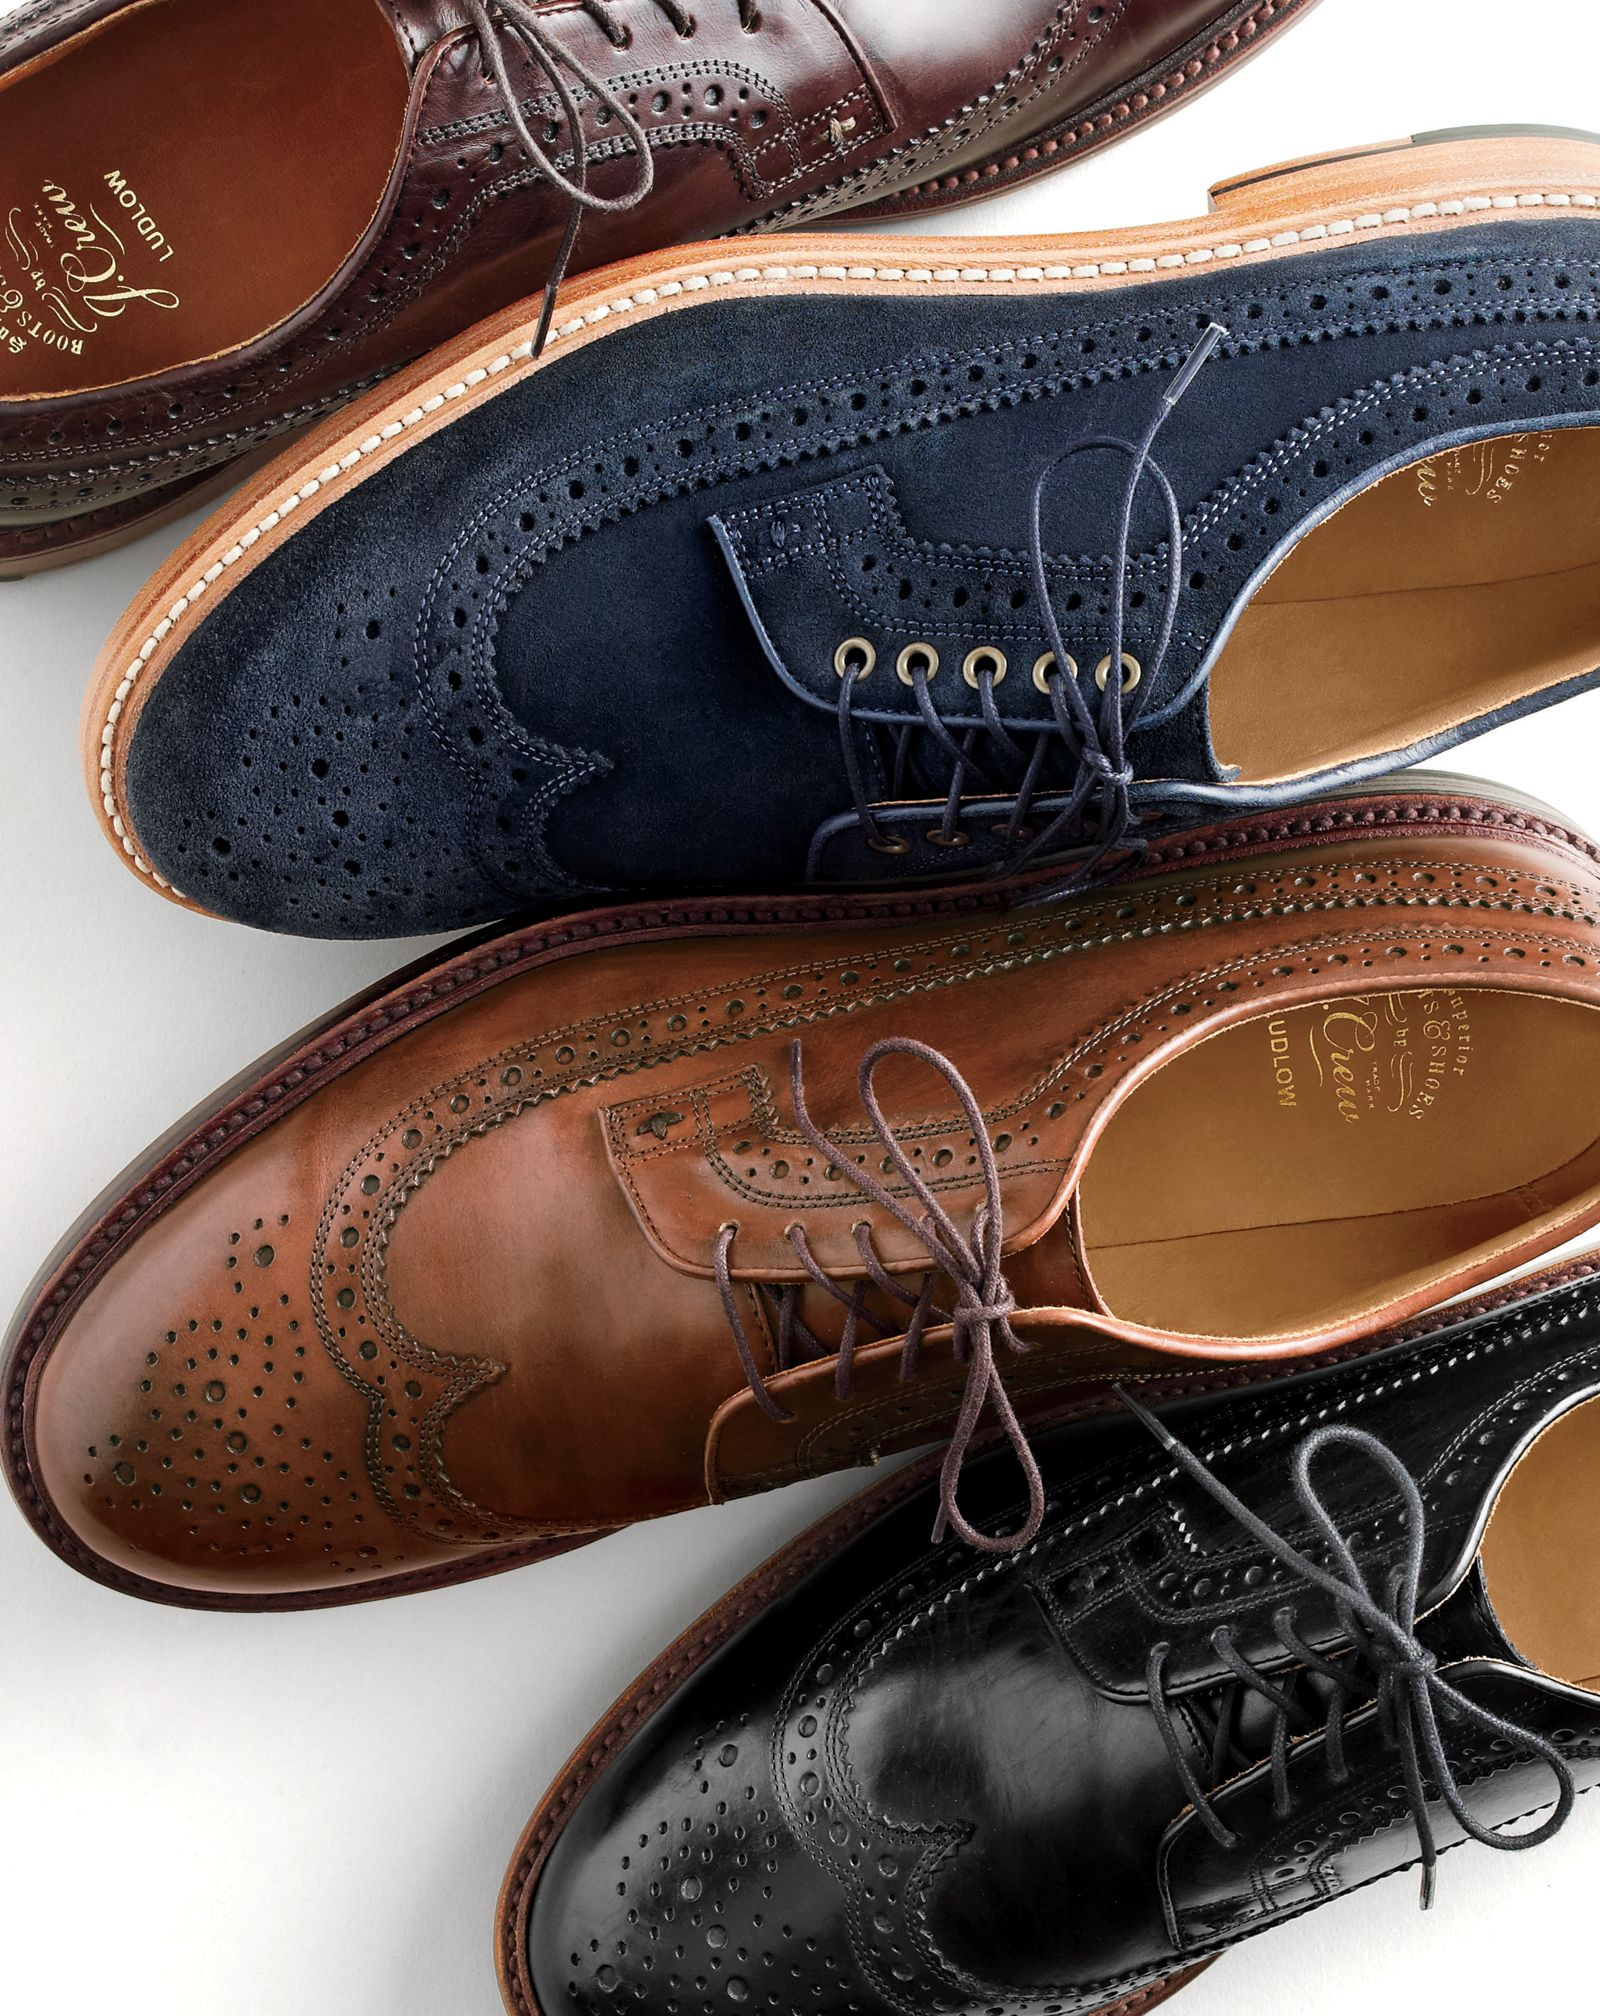 df4de22d4e7 J.Crew men s Ludlow wing tip shoes in suede and leather. To preorder call  800 261 7422 or email verypersonalstylist jcrew.com.